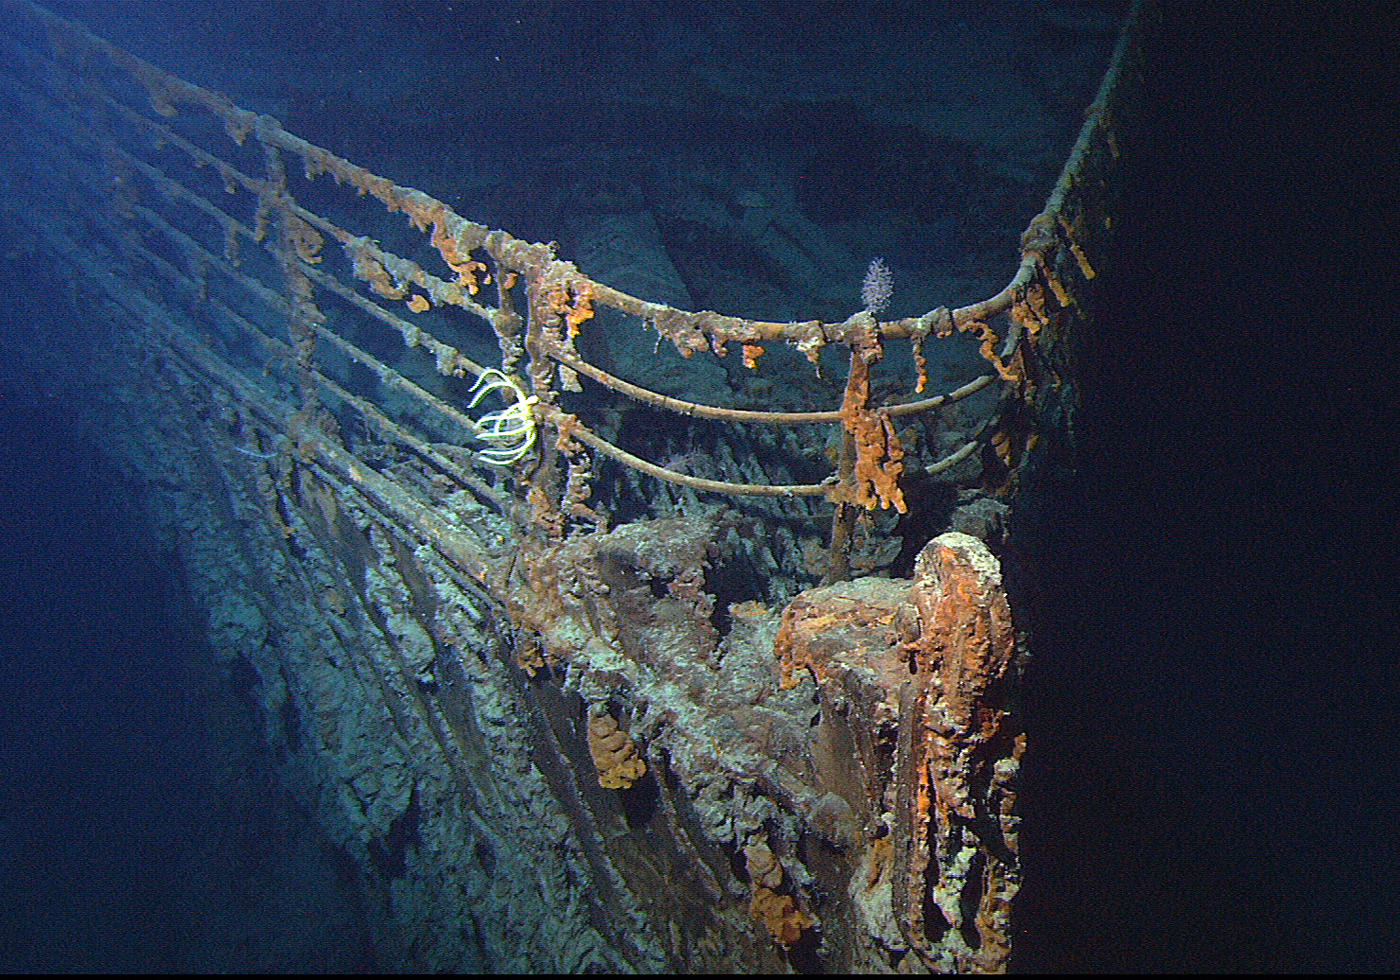 Photo of the bow of the RMS Titanic on the ocean floor with rust, sea growth